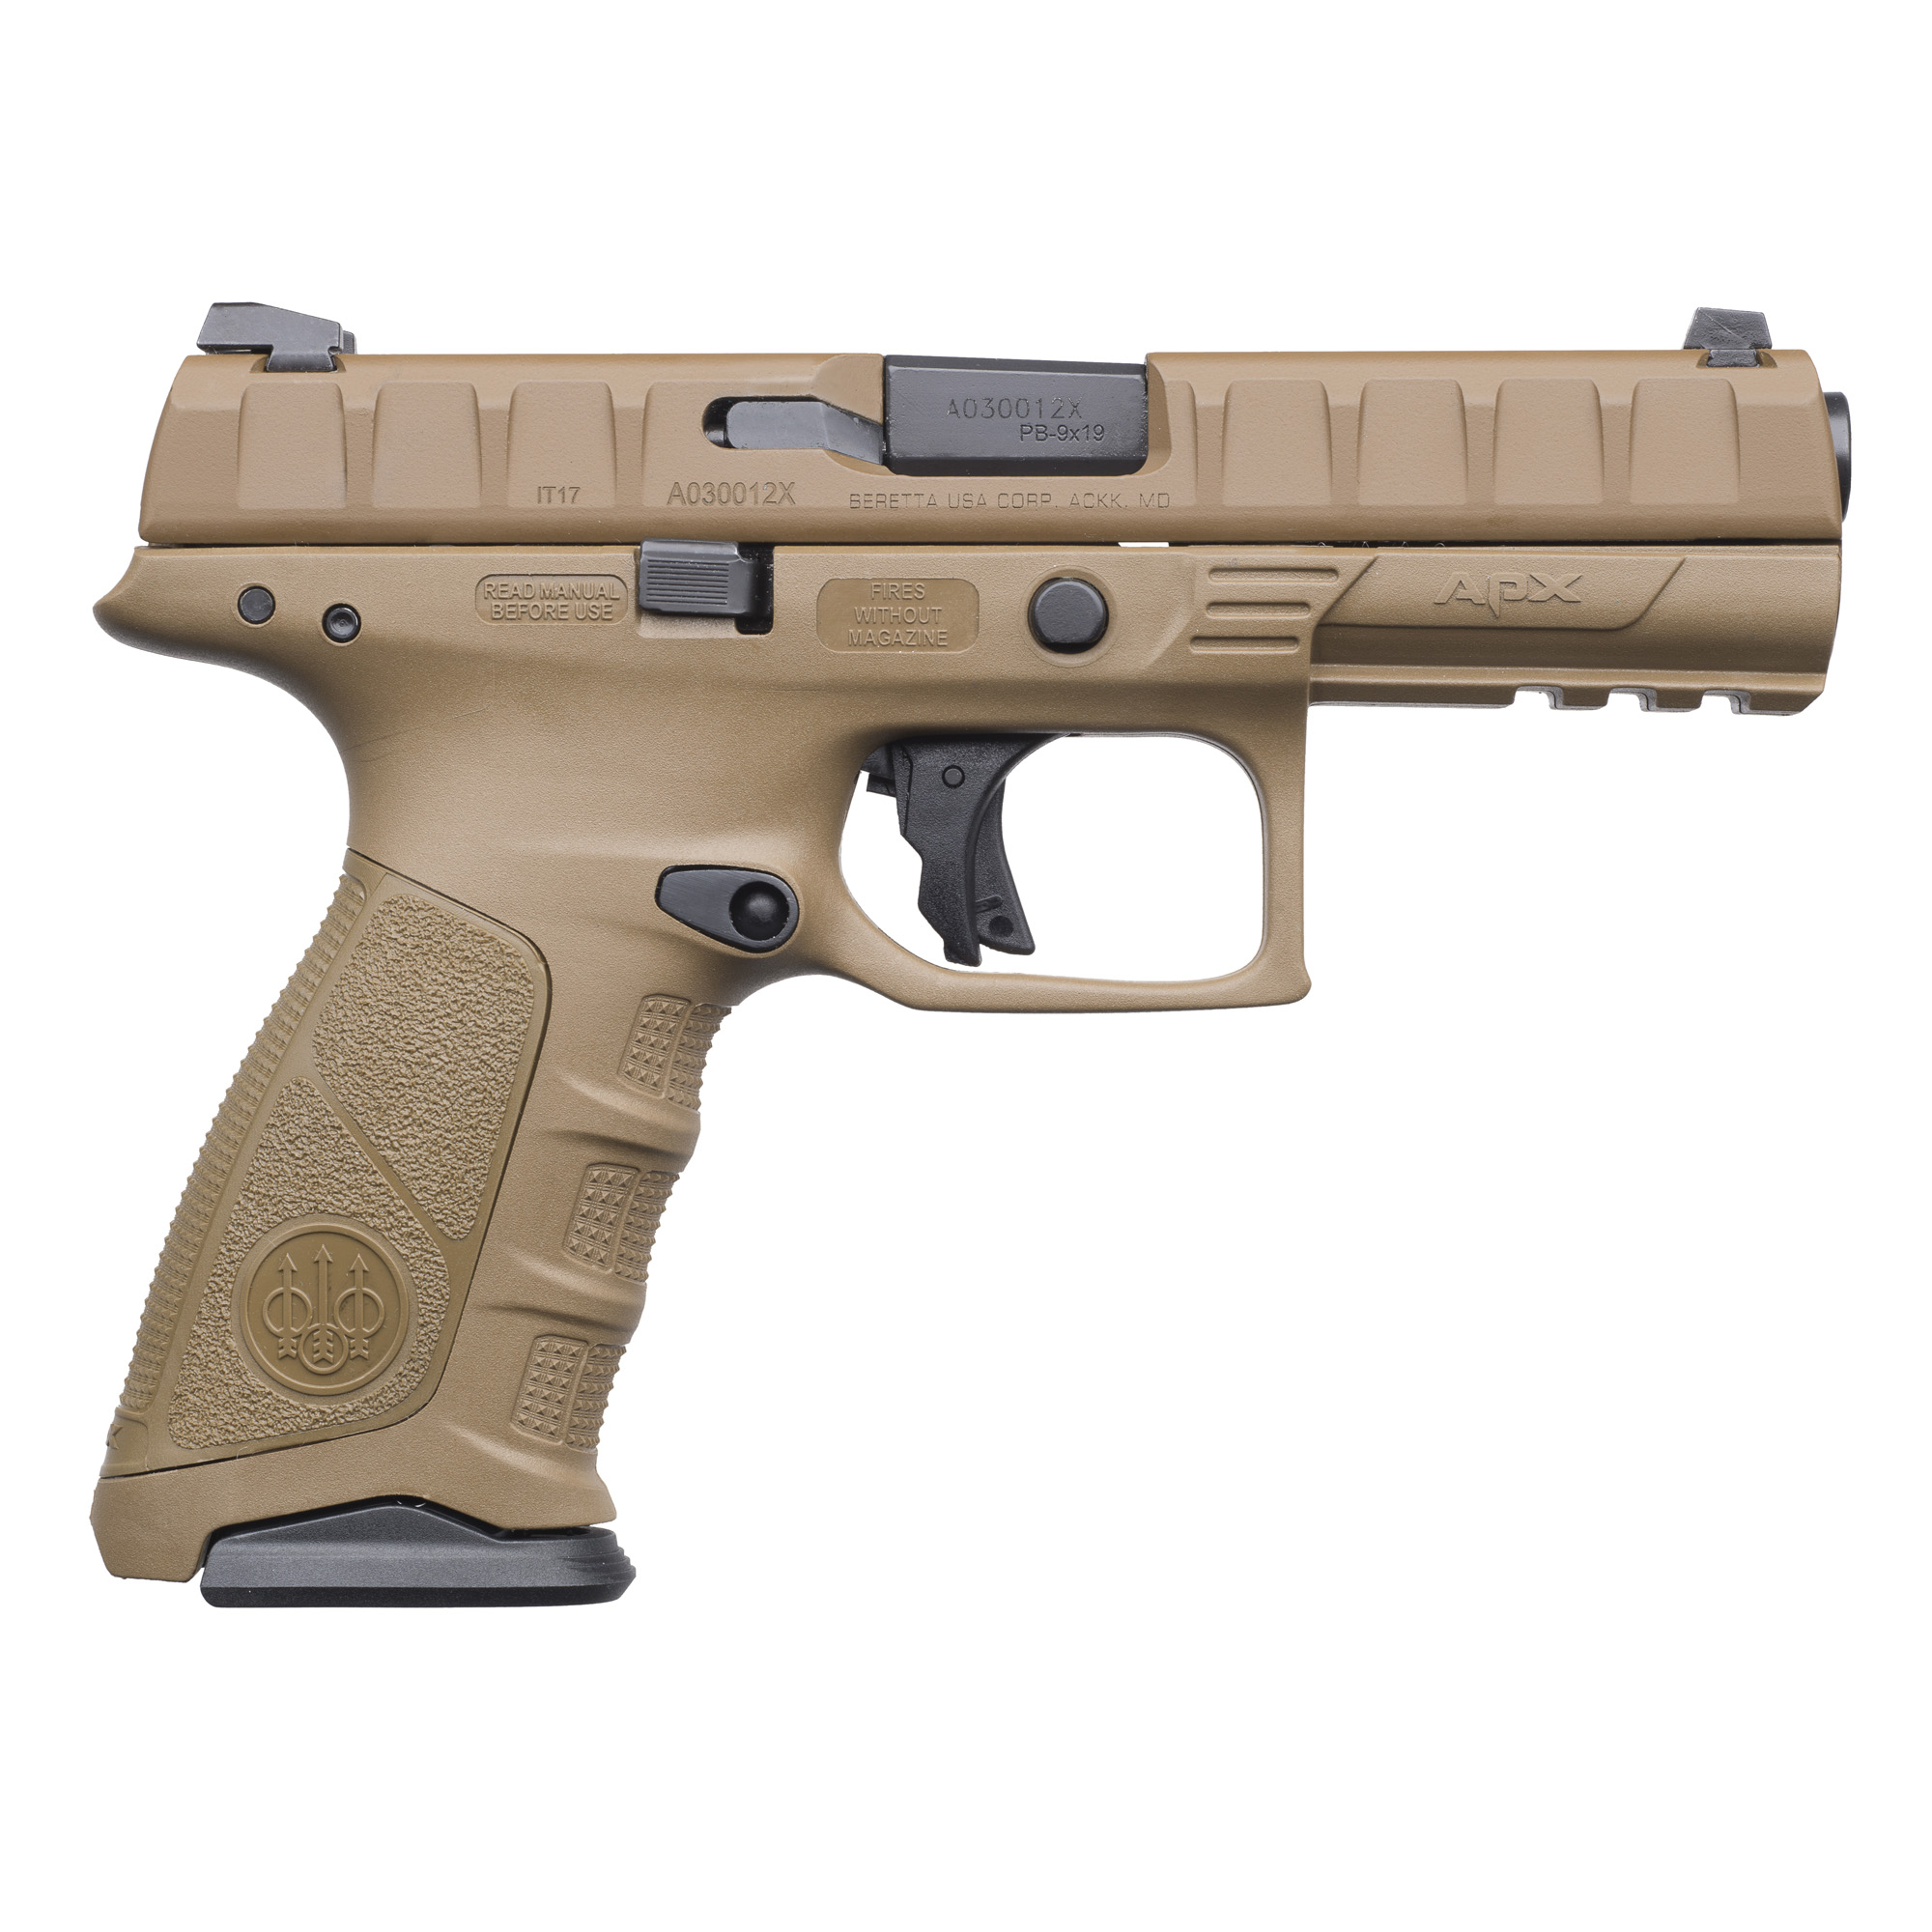 "Designed specifically for military and law enforcement operators"" the APX has been put through extensive testing and evaluation at the professional end user level. The result is a pistol that delivers superior performance in durability and reliability"" ergonomics"" trigger"" and modularity."